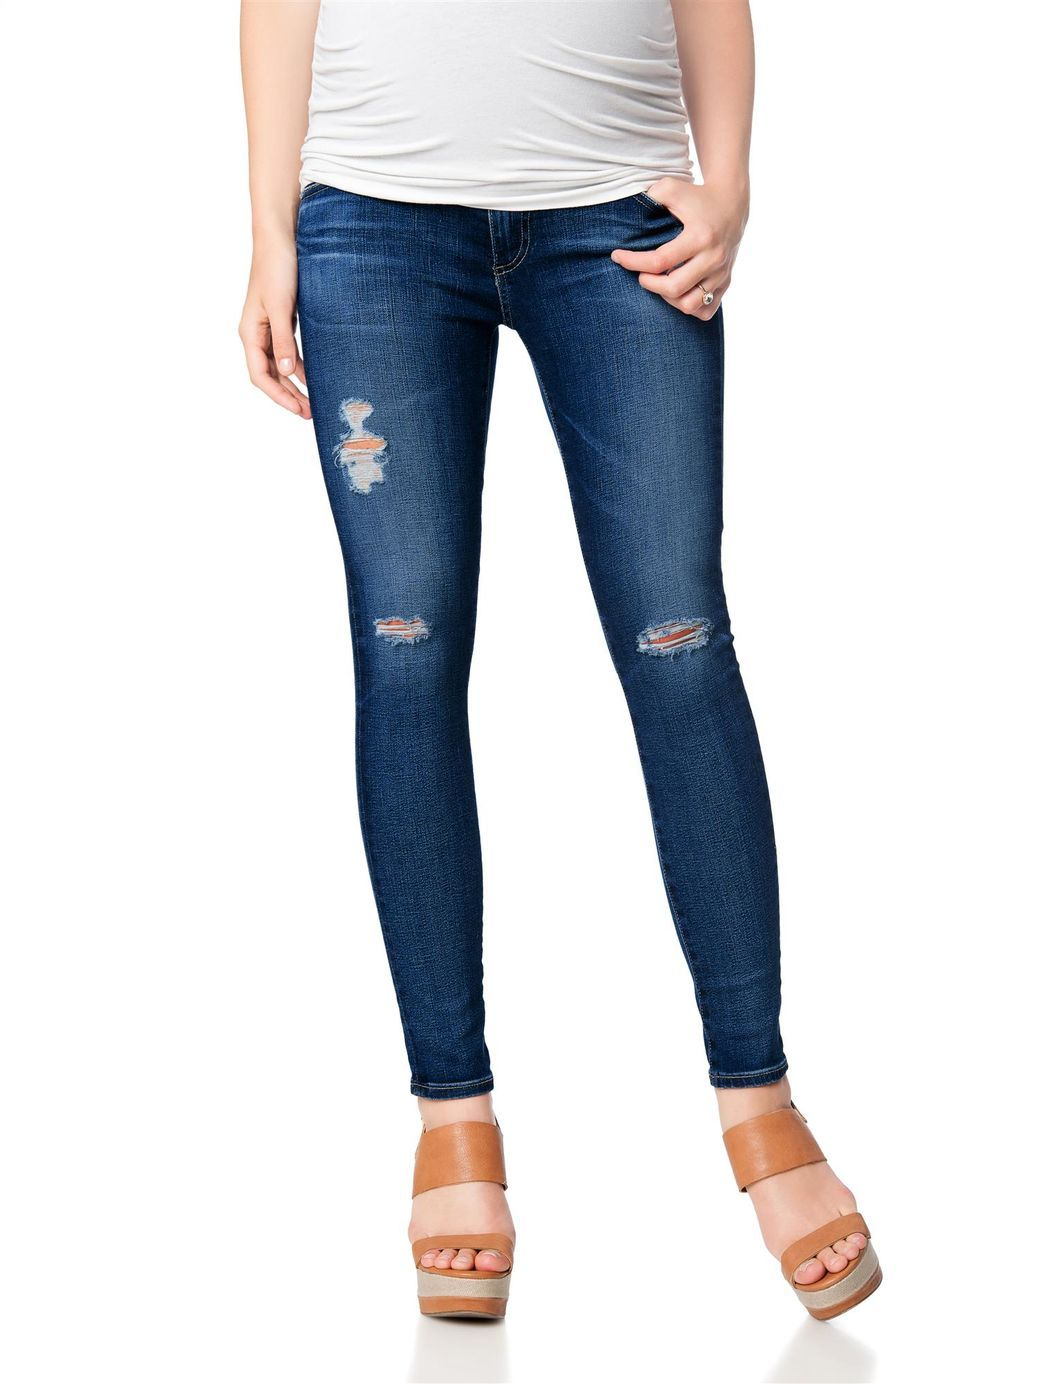 446be089ed11b AG Secret Fit Belly Destructed Legging Ankle Maternity Jeans, 11 Yr Swapmeet